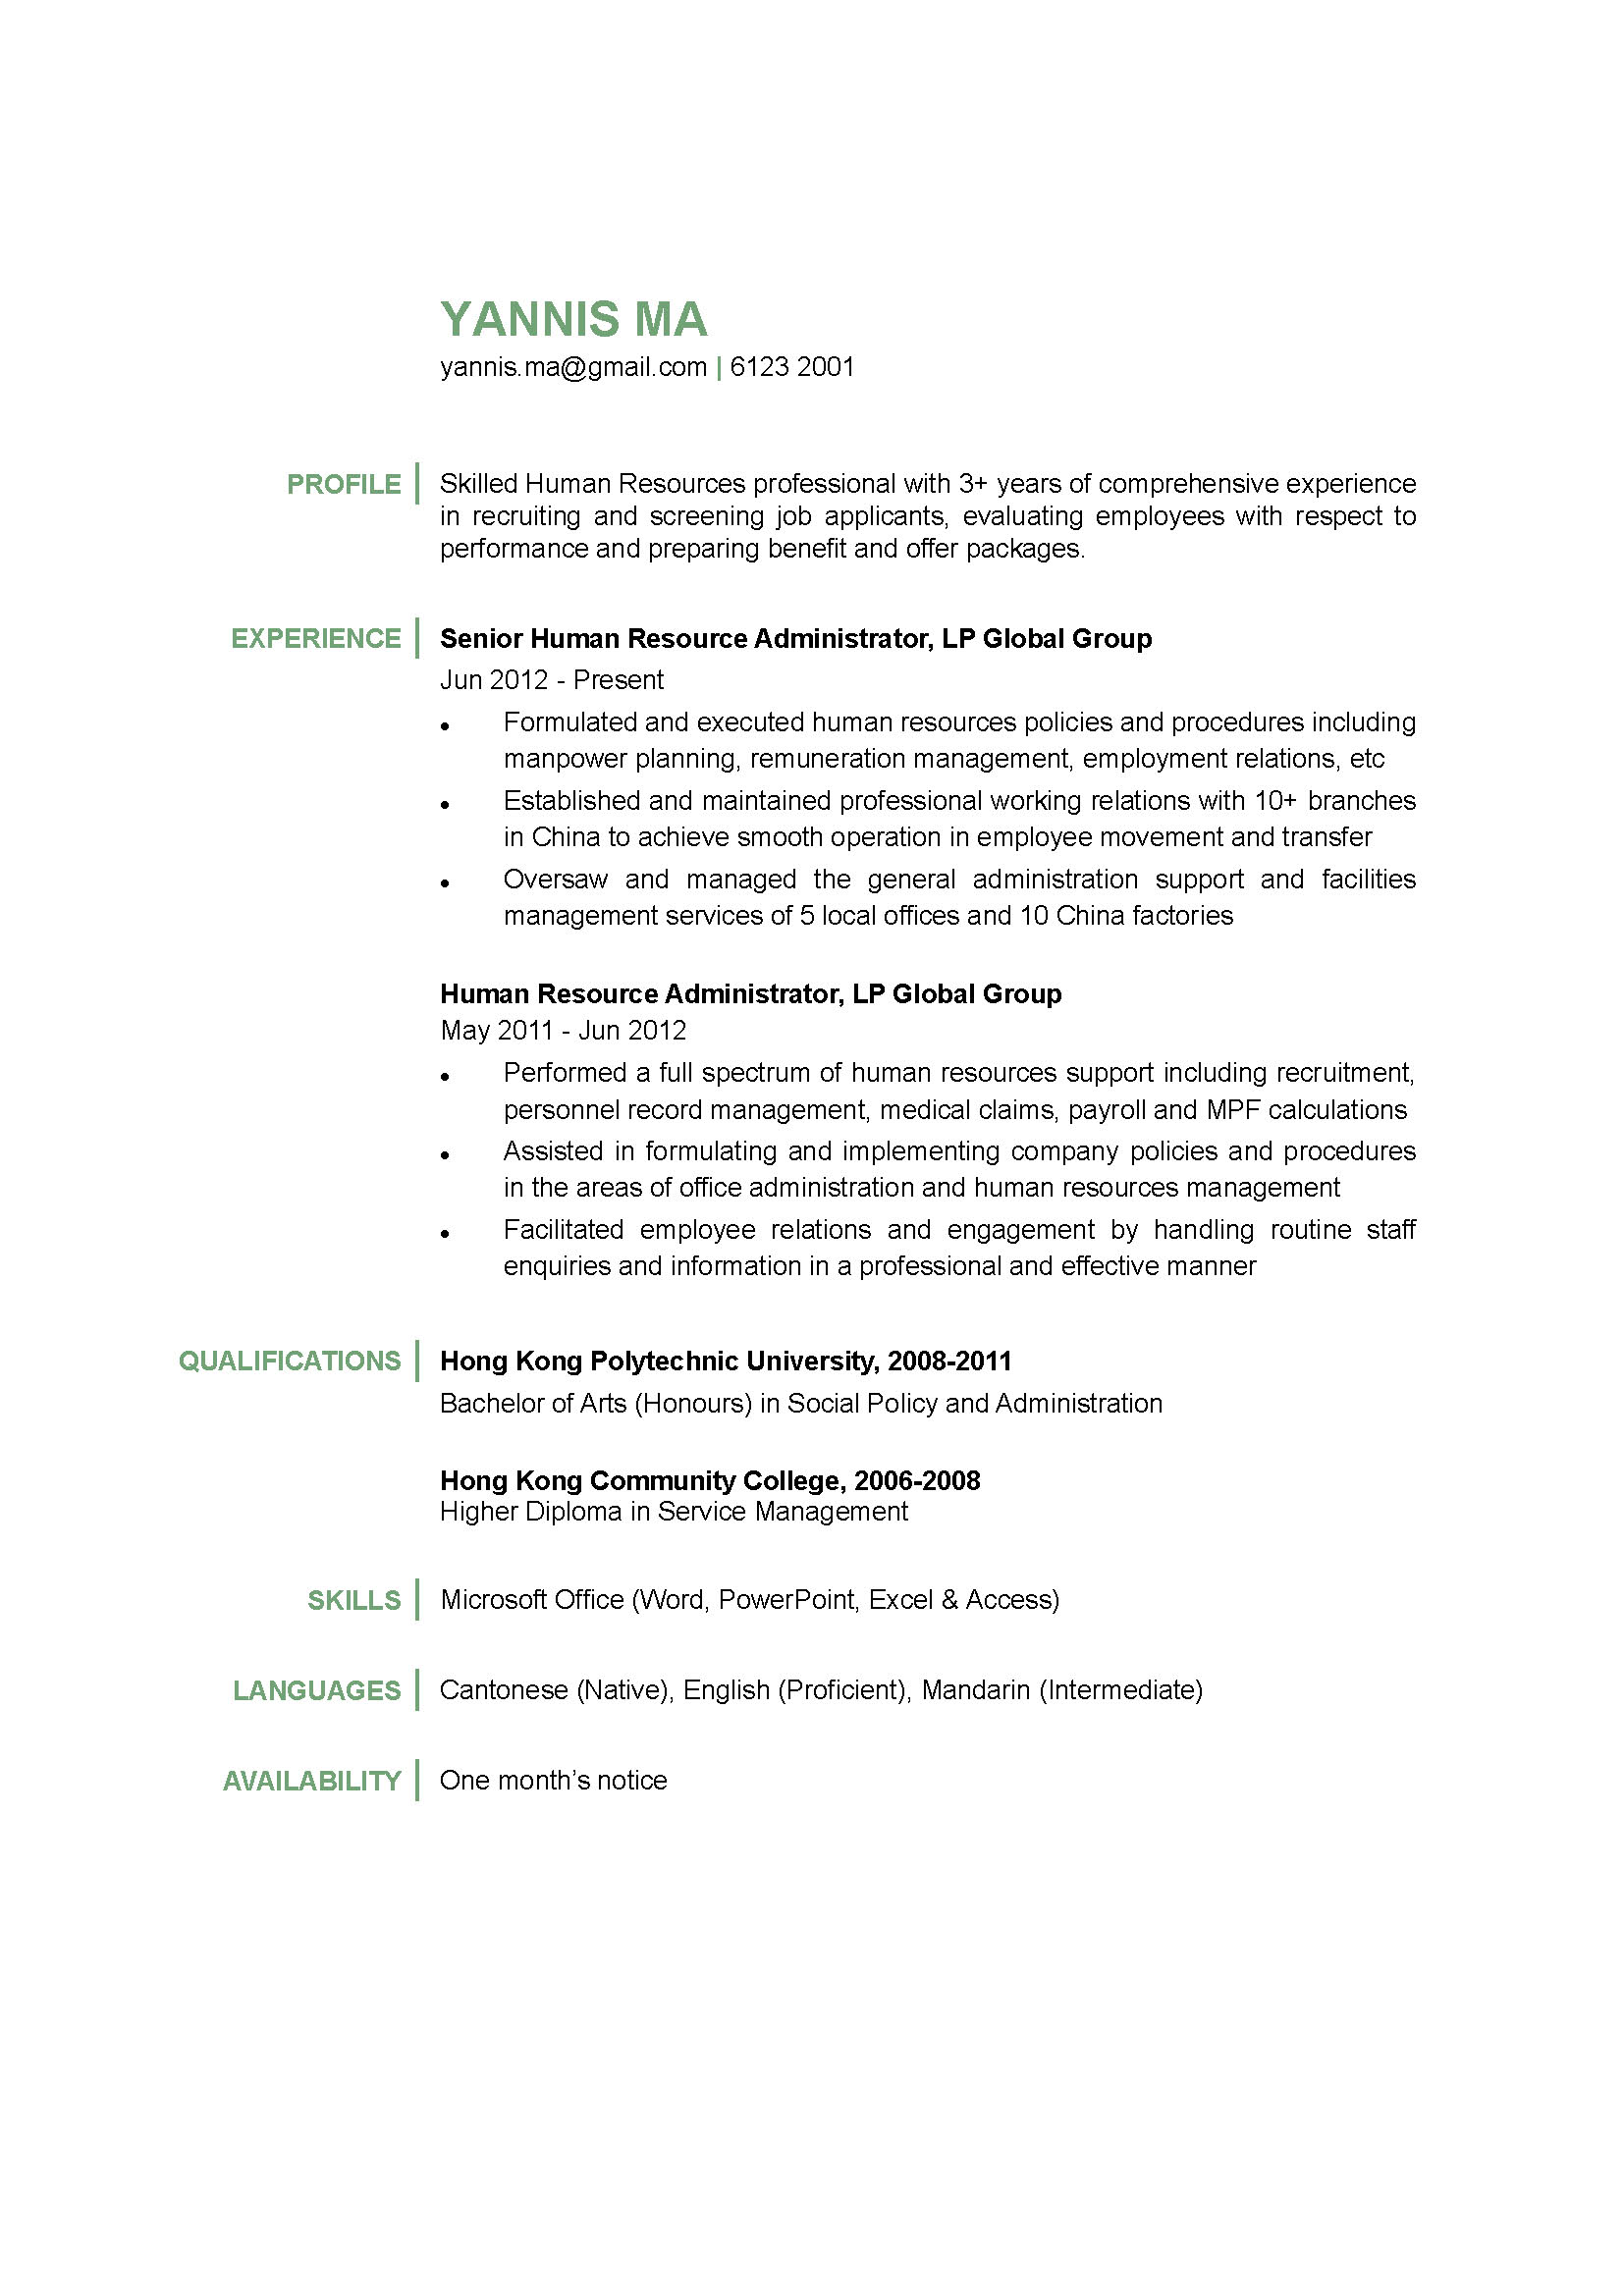 Human Resources Administrator CV